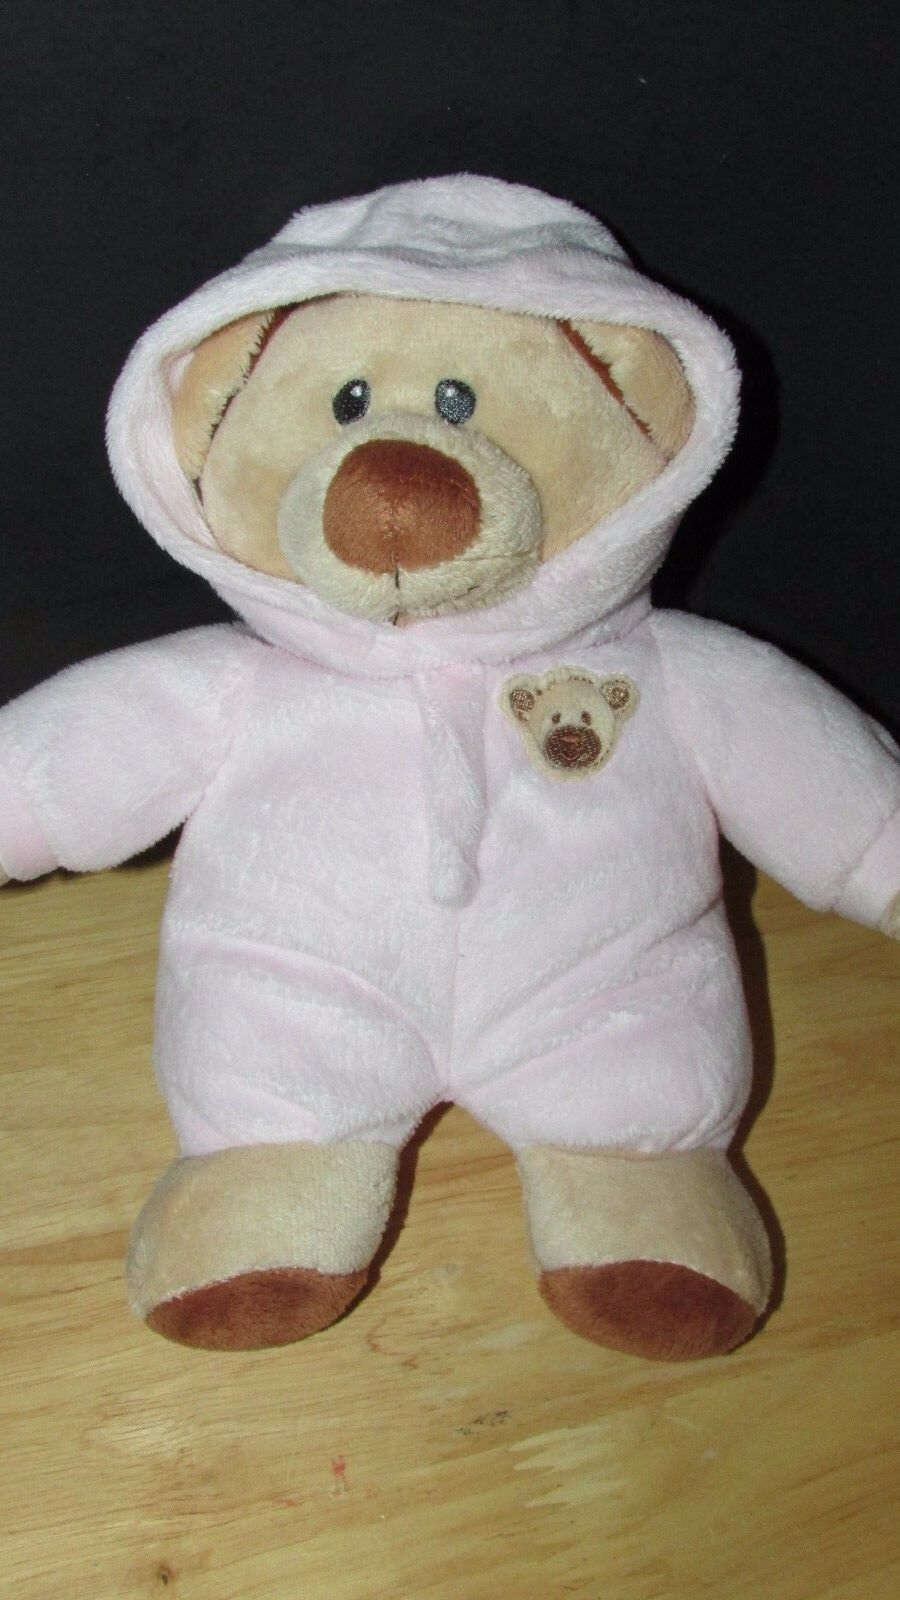 Ty tylux Pluffies tan Bear Pink attached hooded pajamas plush Love to Baby 2015